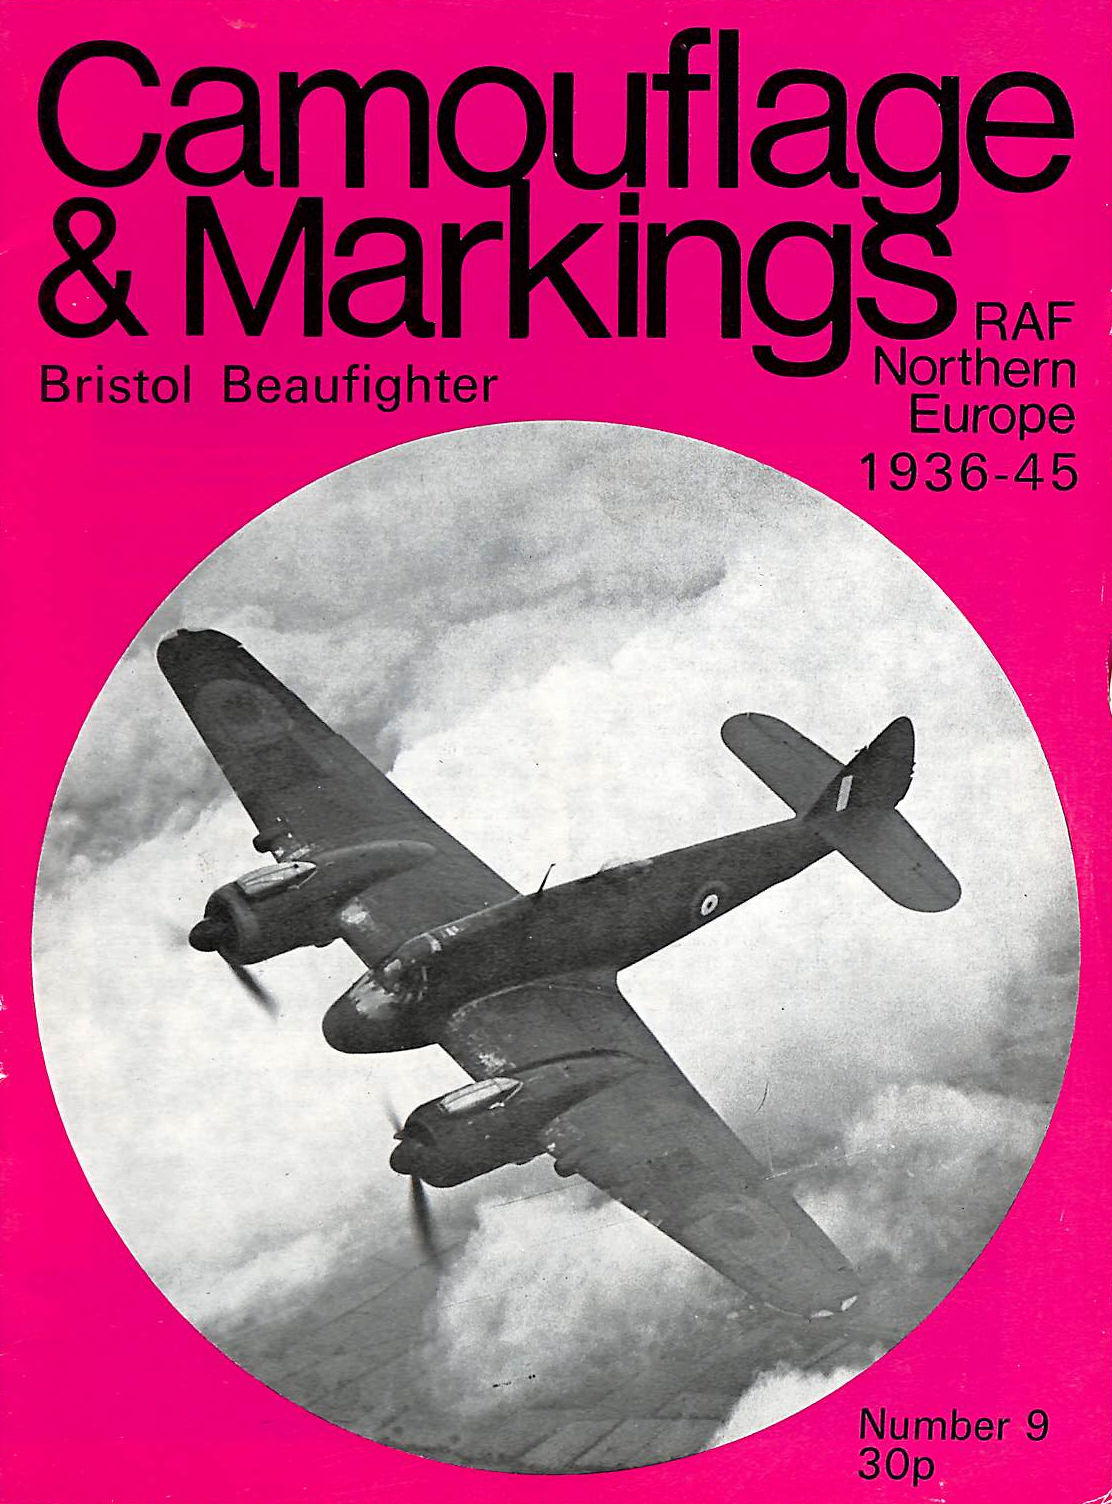 Image for Bristol Beaufighter - Camouflage & Markings, Raf Northern Europe 1936-45 (Camouflage & Markings, Raf Northern Europe 1936-45)